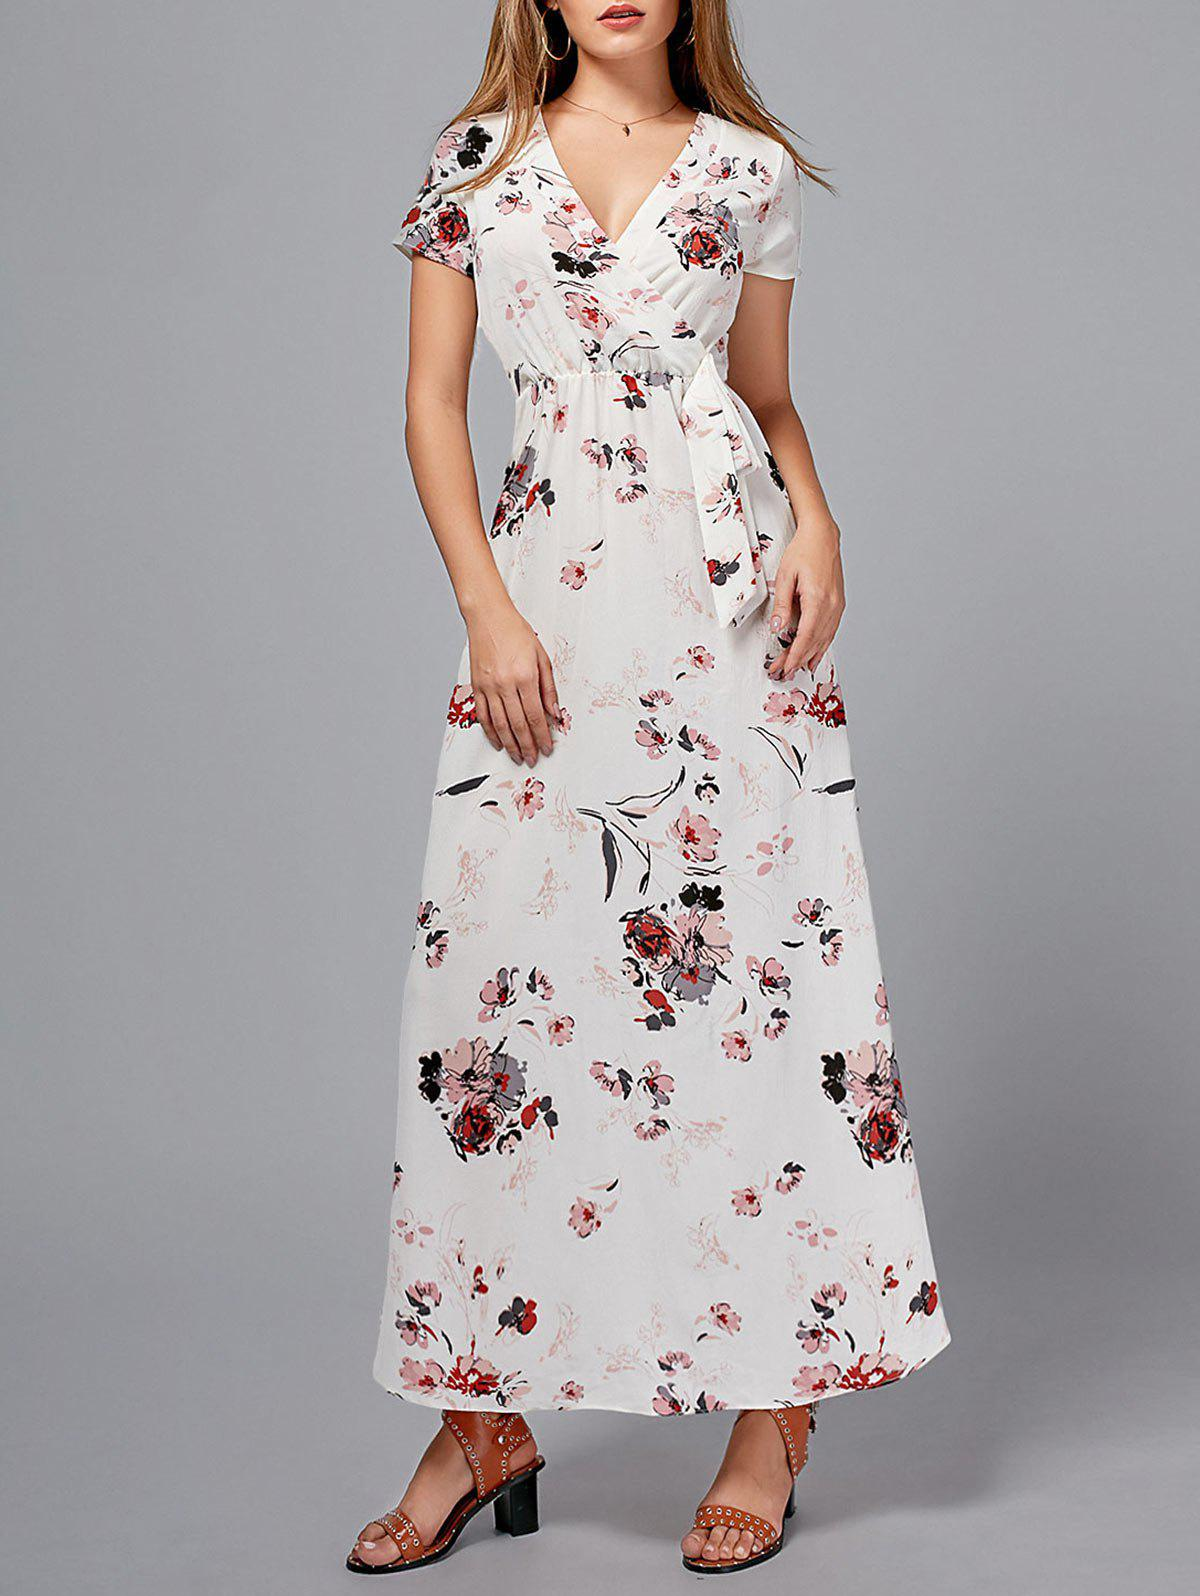 V Neck Bowknot Floral Maxi Dress - FLORAL XL